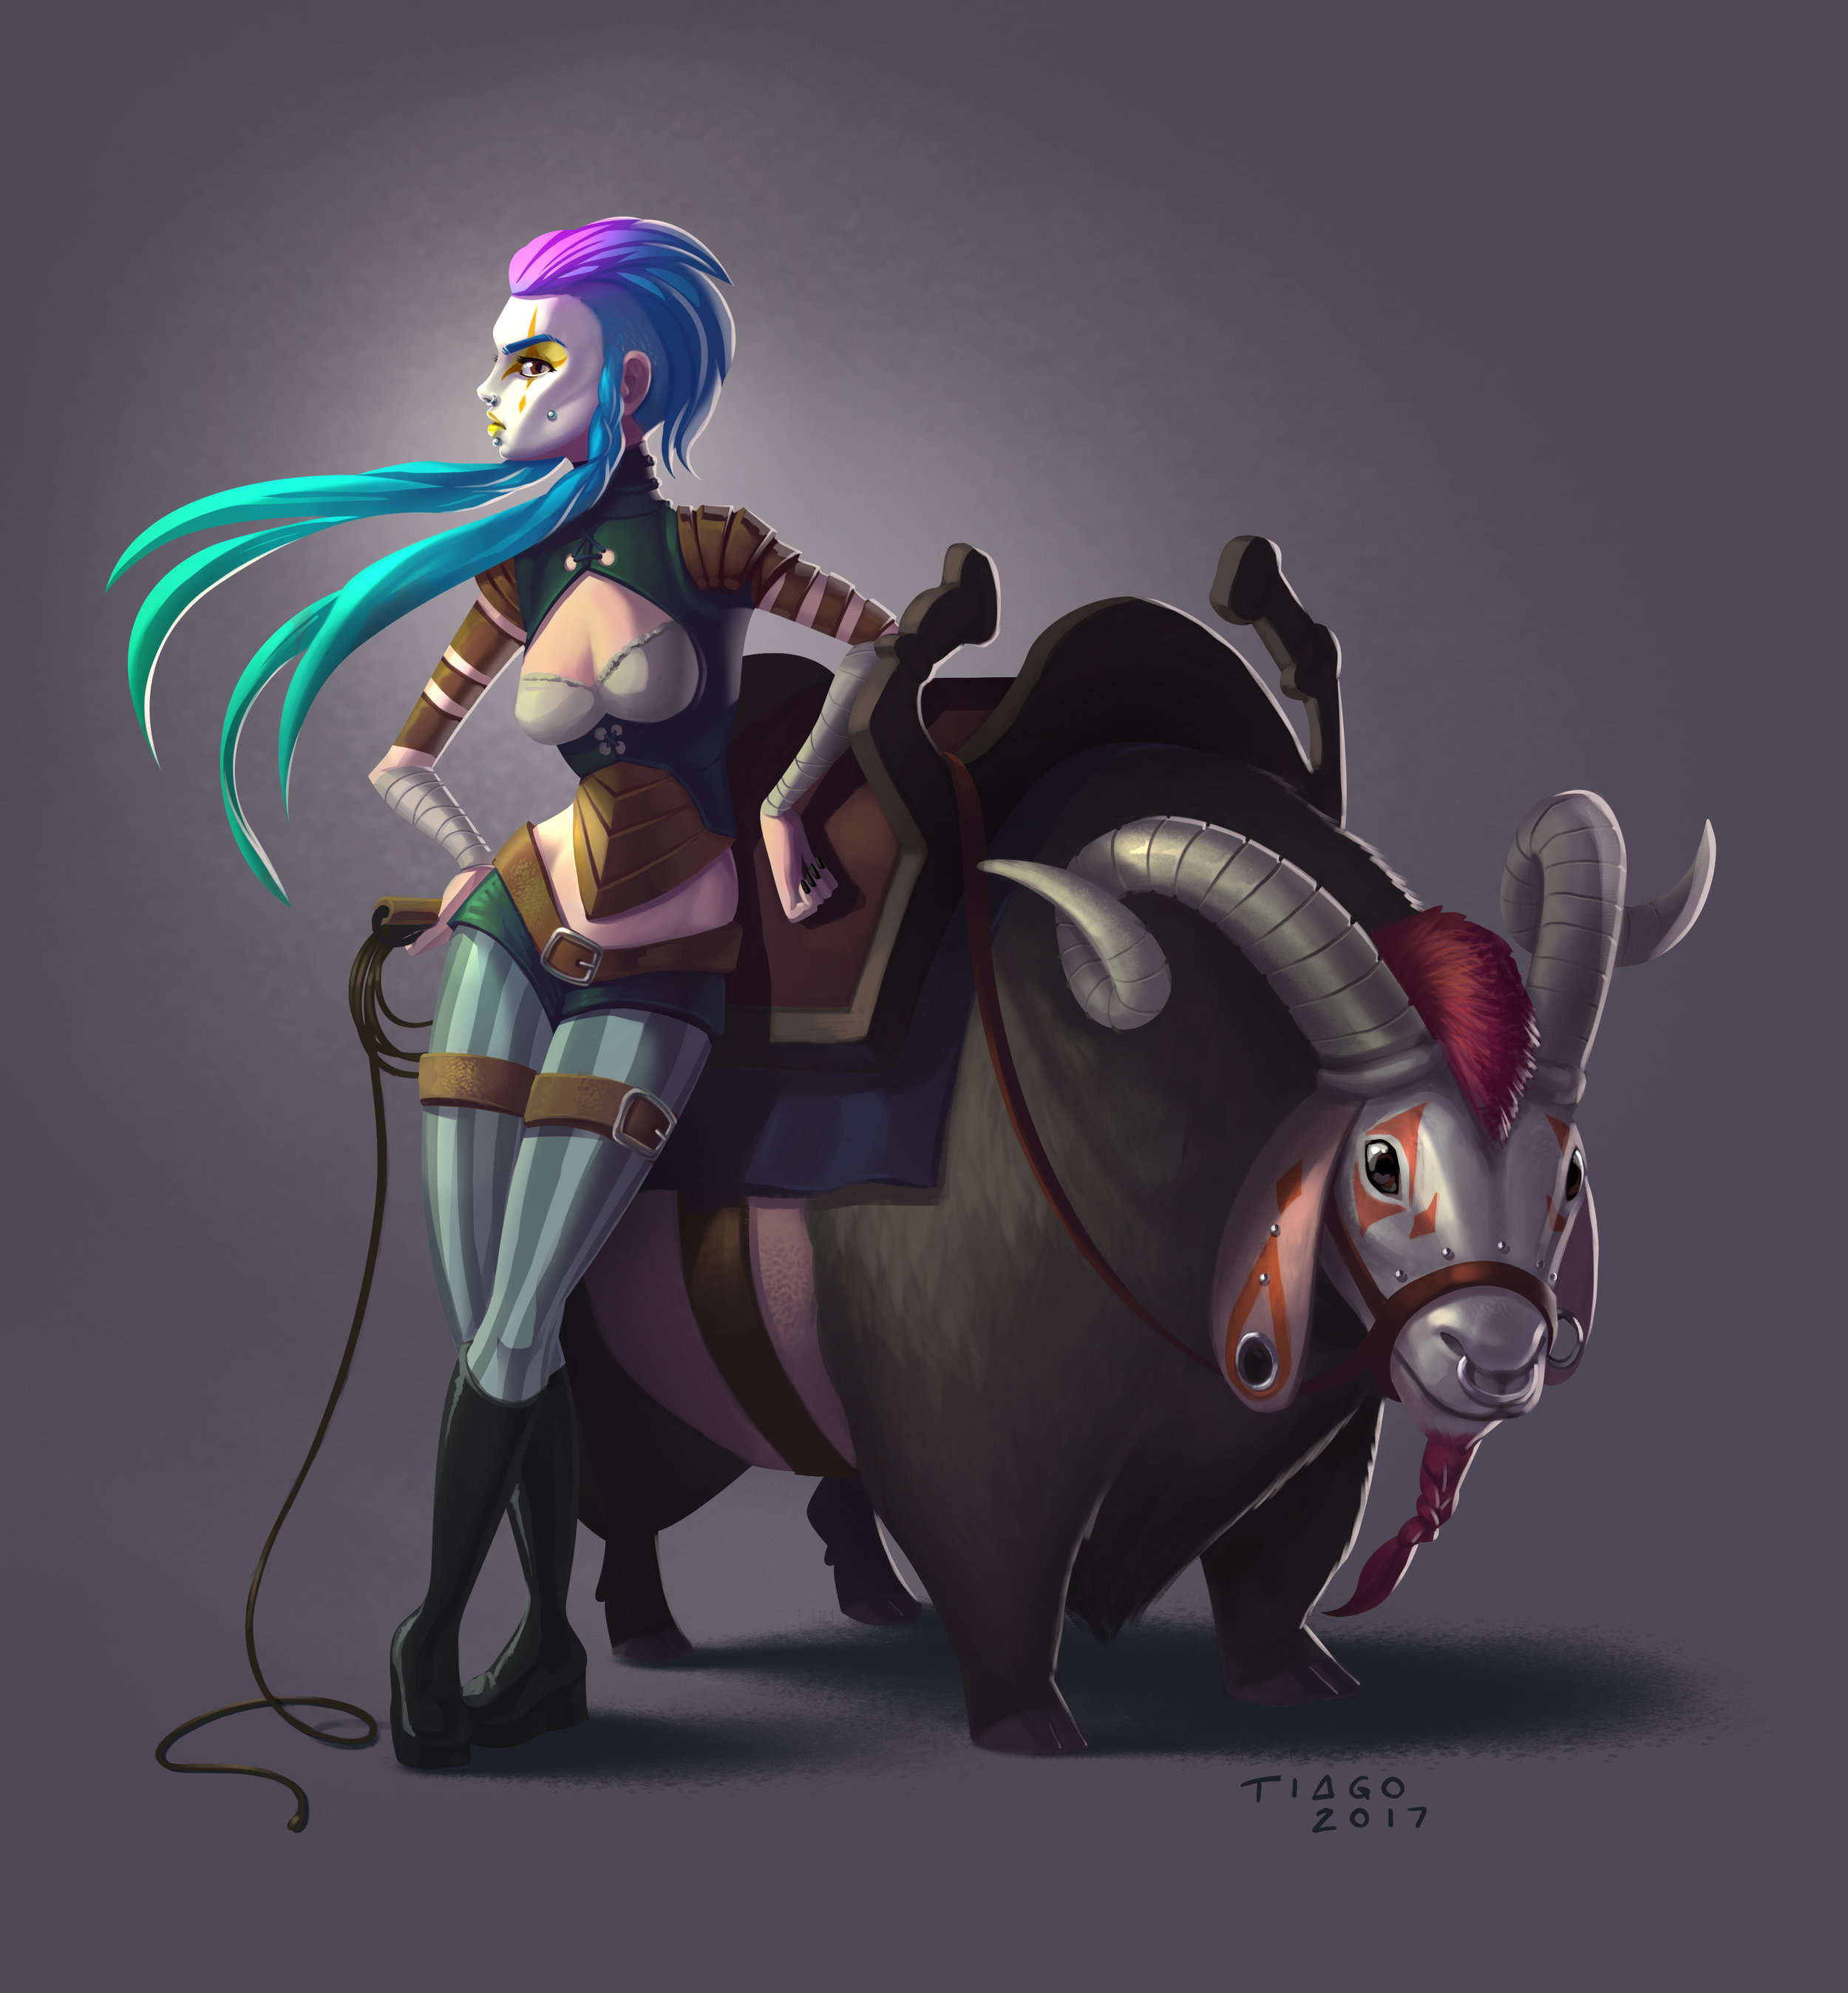 Participant of CGTraderAwards - Character Category - Goat Rider